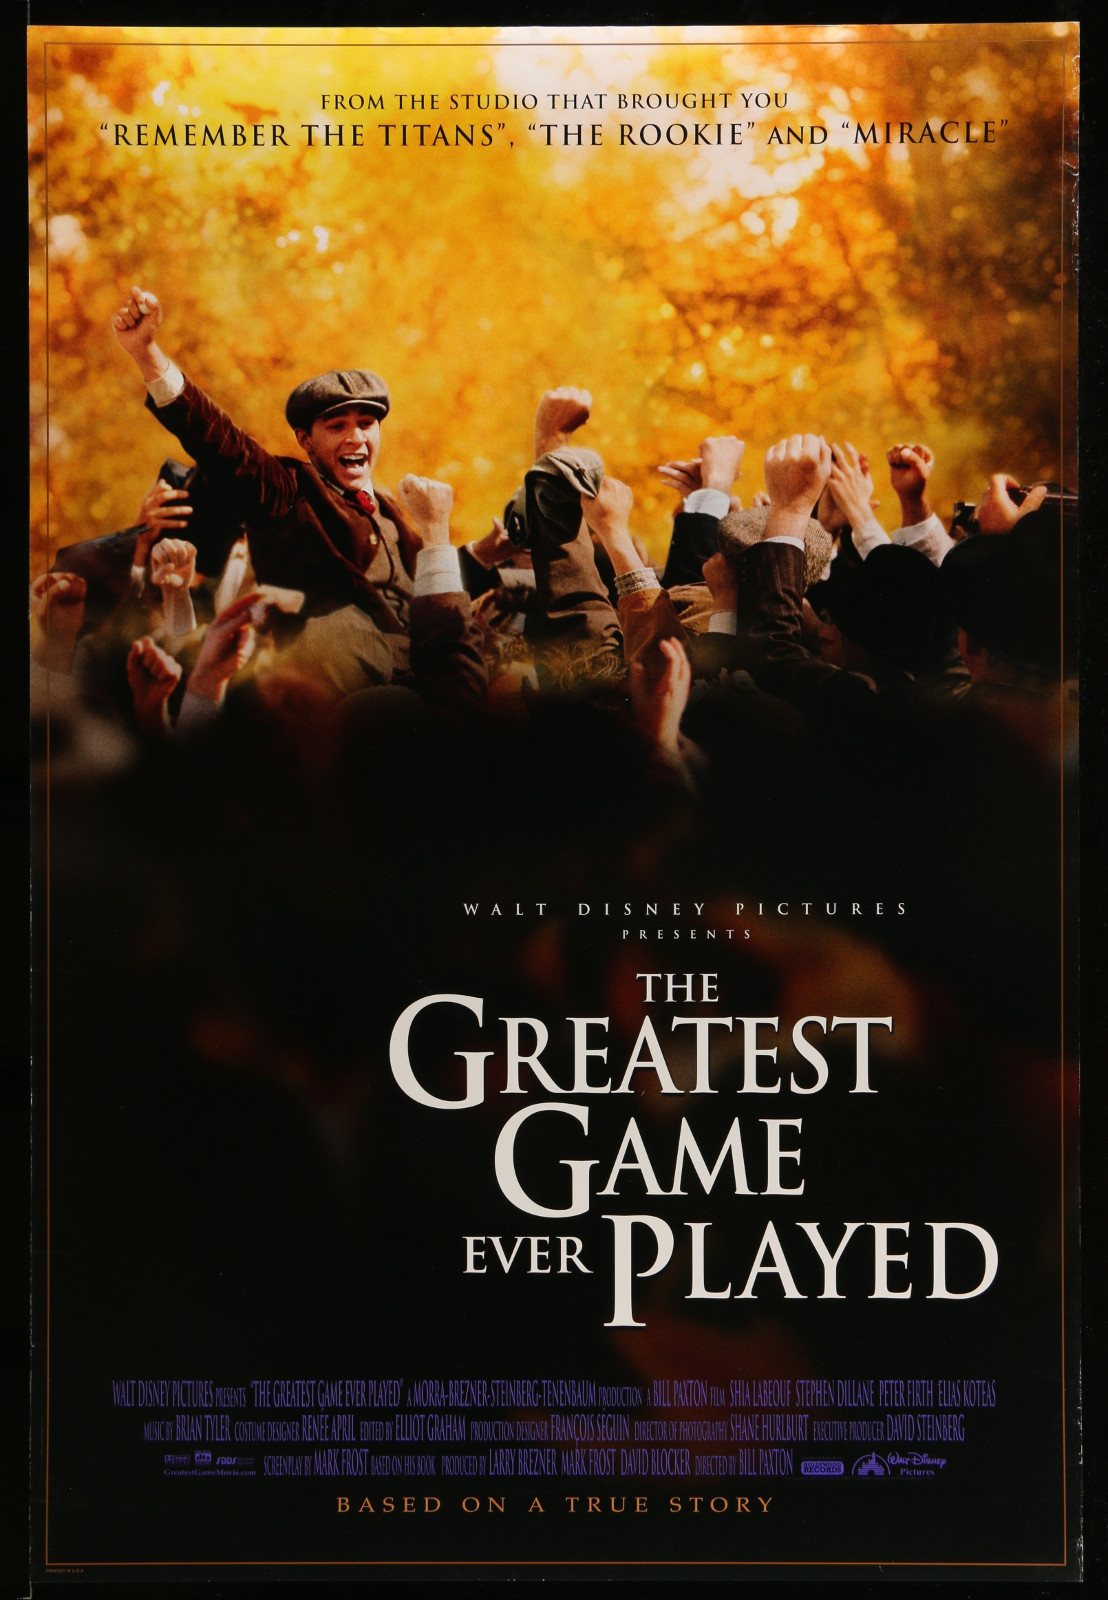 The Greatest Game Ever Played 2A355 A Part Of A Lot 31 Unfolded Mostly Double-Sided 27X40 One-Sheets '90S Cool Movie Images!